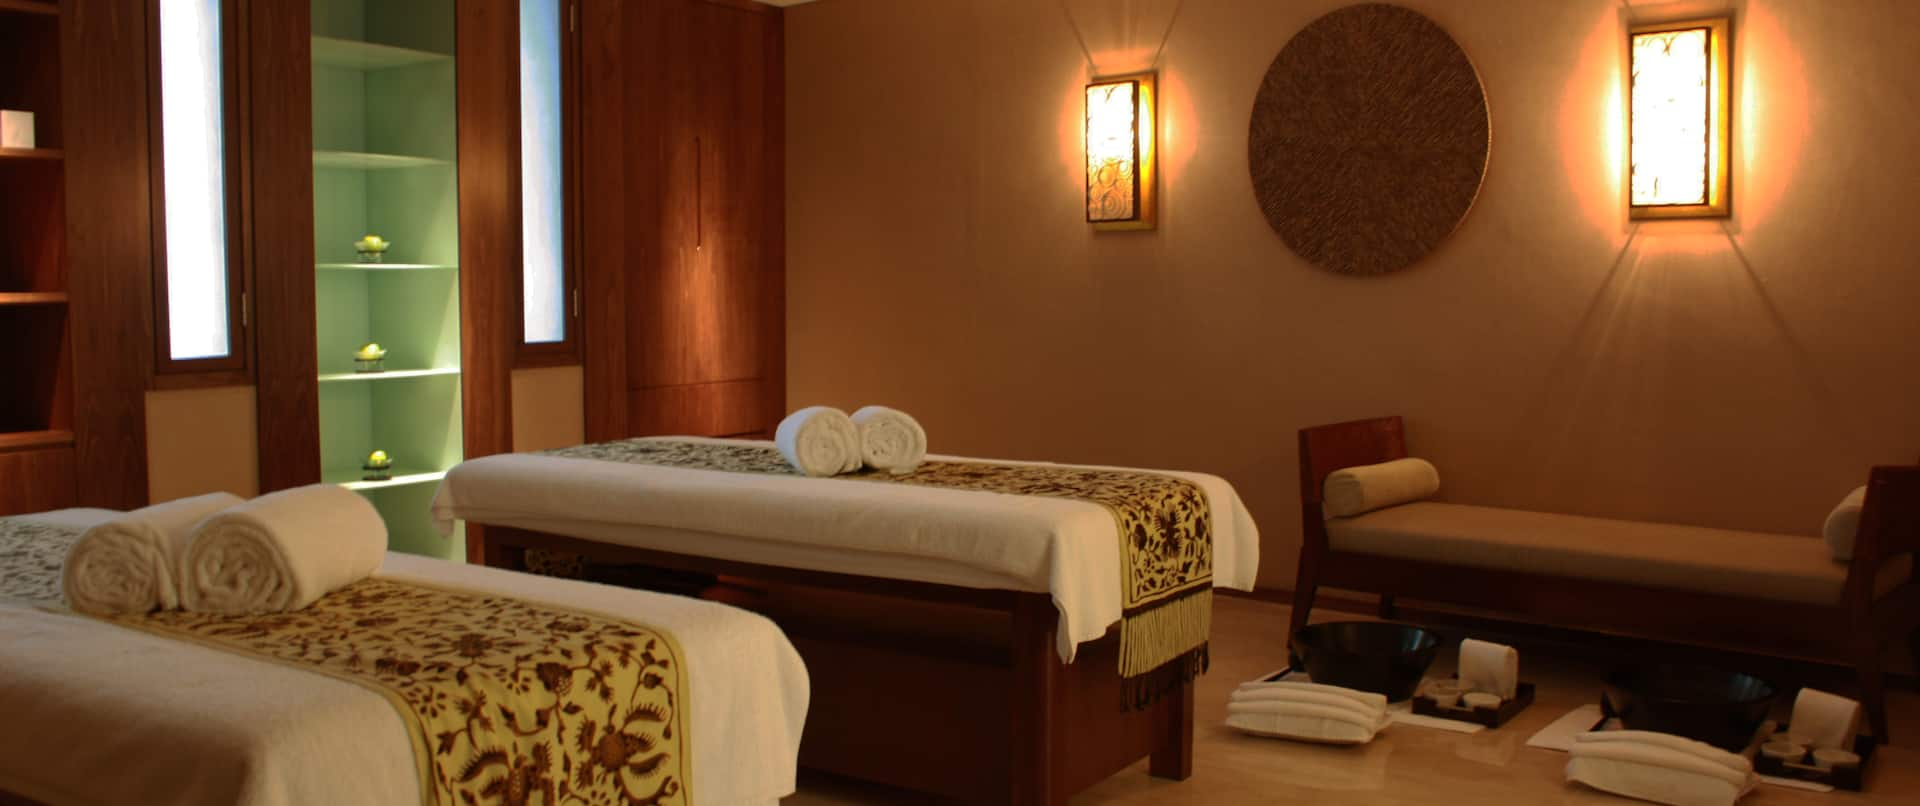 Spa With Massage Tables